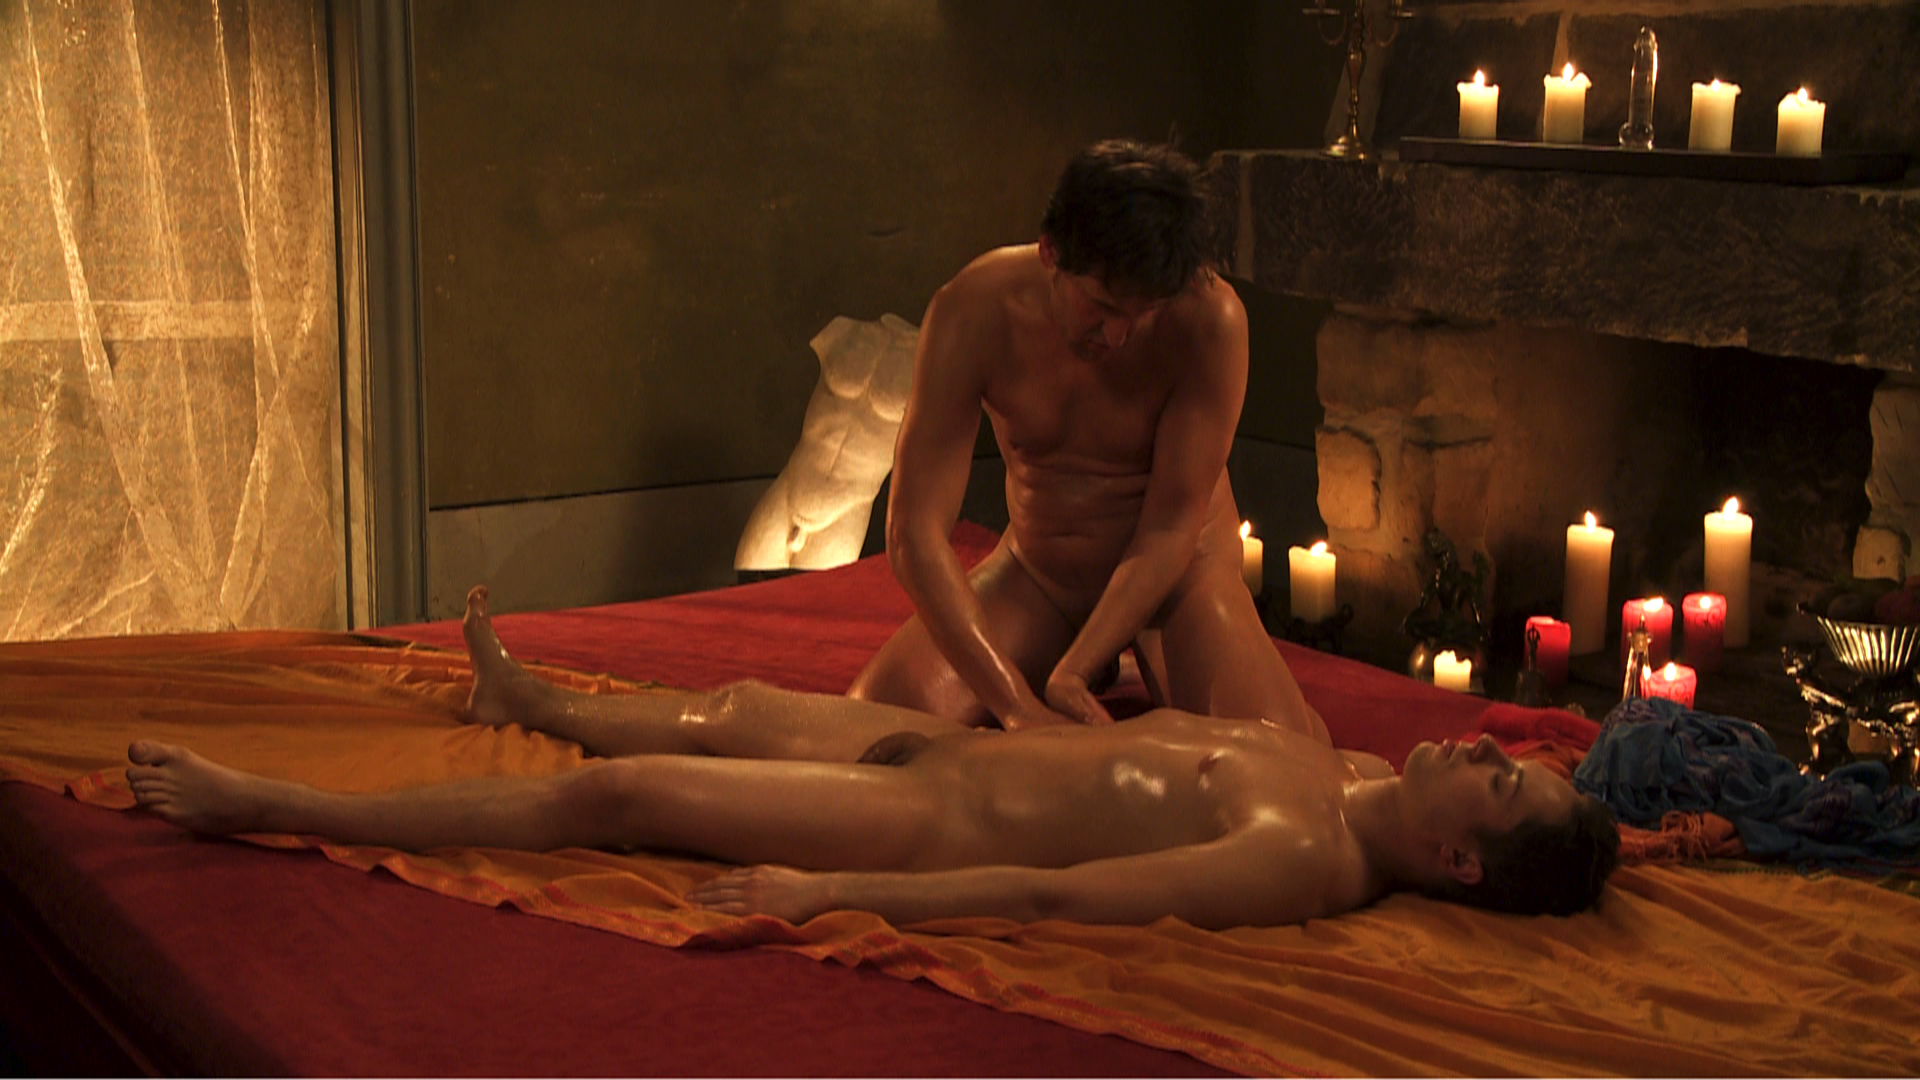 Master sadomaso tantra gay video